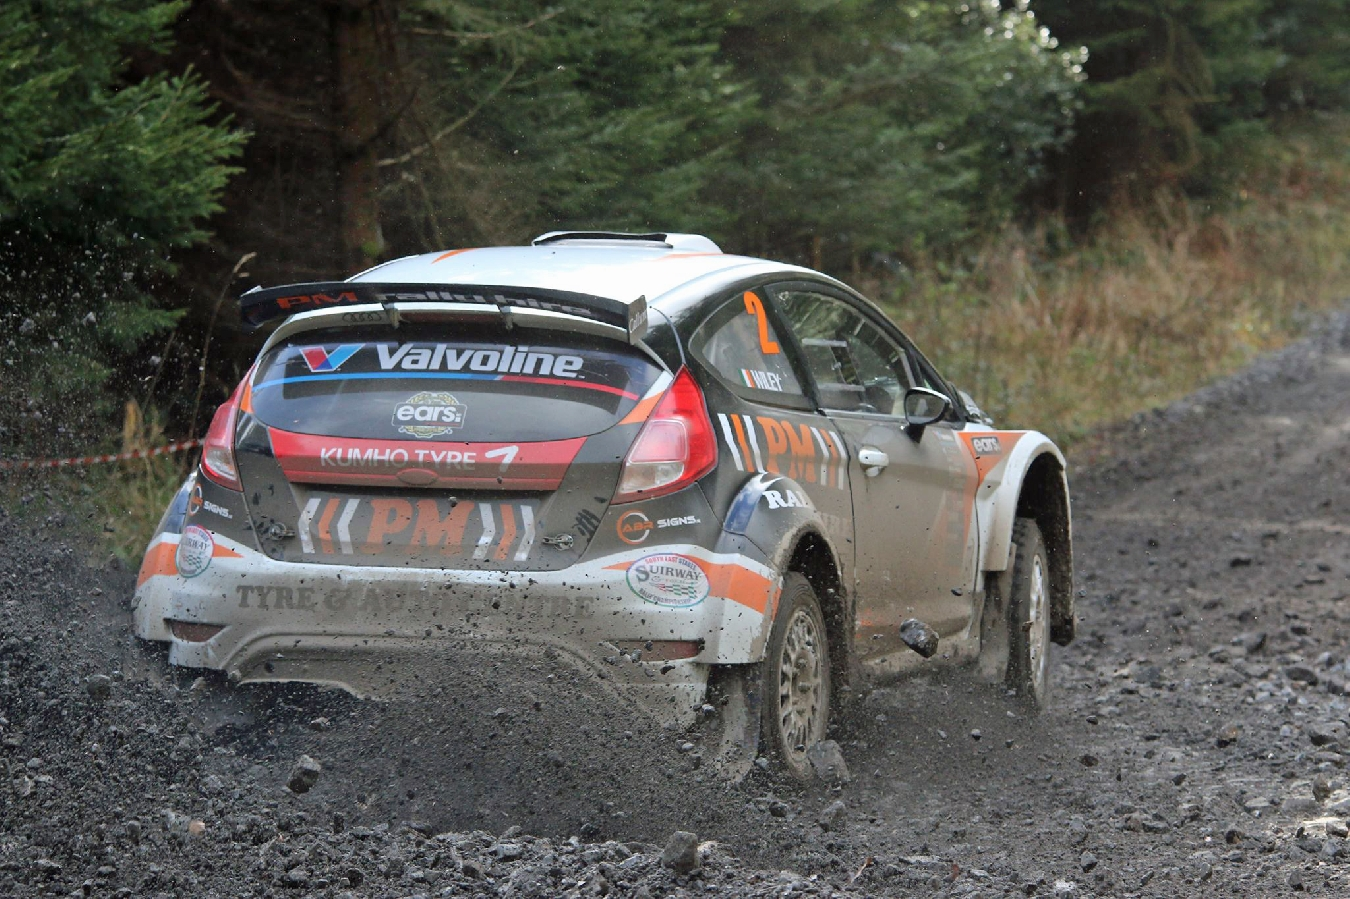 Andrew Purcell & Mark Wiley charge their new R5 Fiesta to its maiden victory in Carrick on Suir!